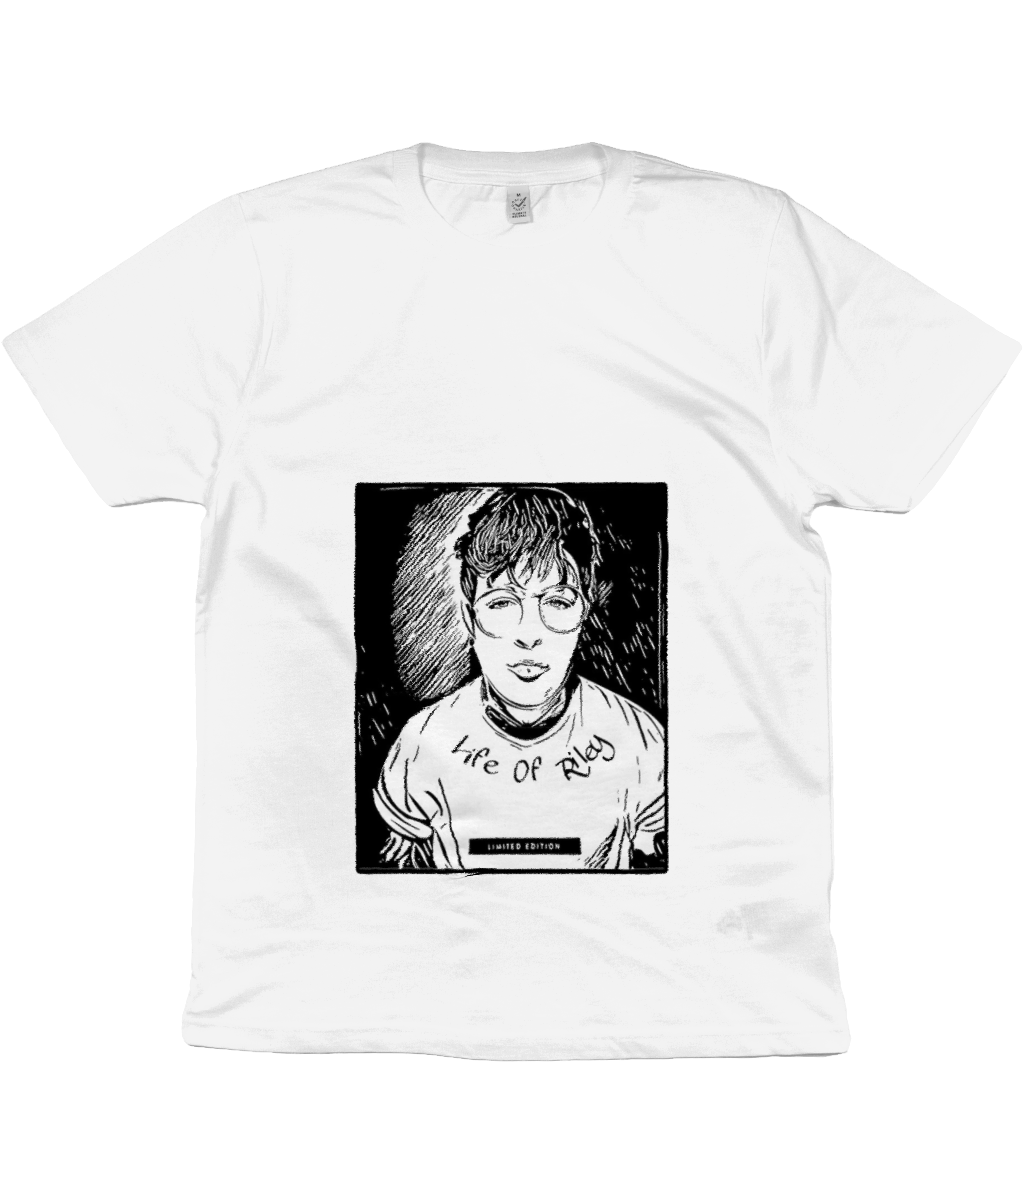 Unisex Riley Limited Edition T-Shirt